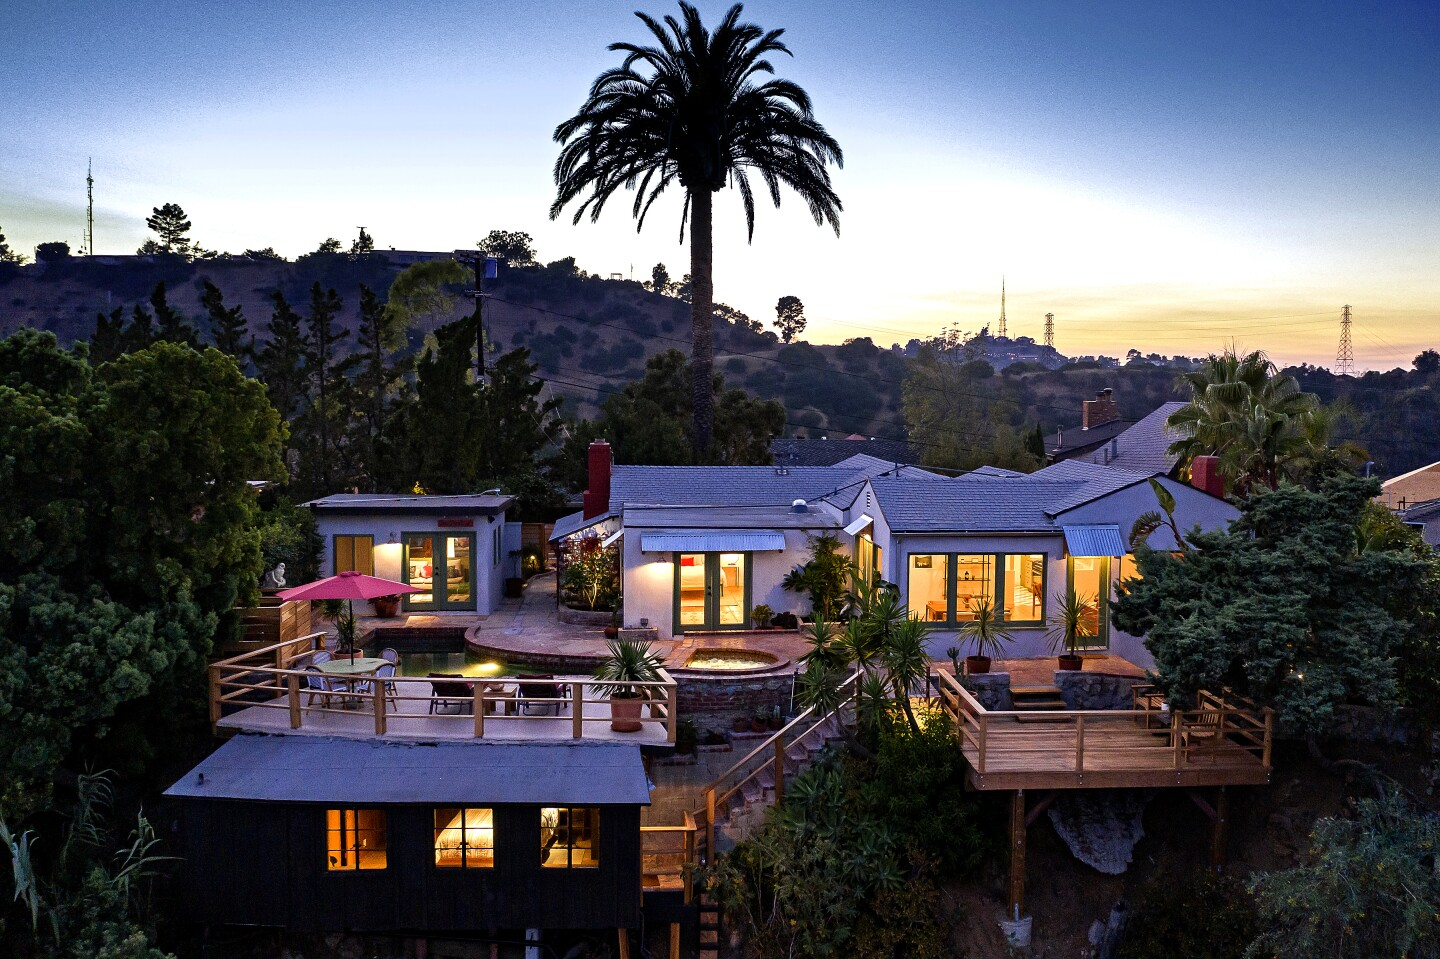 Married actors and serial home-flippers Corbin Bernsen and Amanda Pays have listed their latest project, a four-structure compound in Laurel Canyon, for $1.995 million. The properties were originally part of a small real estate empire owned by actor-producer Beach Dickerson, who leased the homes to various Hollywood types, including Bernsen. A main house, a pool house, an A-frame-style guesthouse and a small bungalow combine to offer four bedroom and four bathrooms.